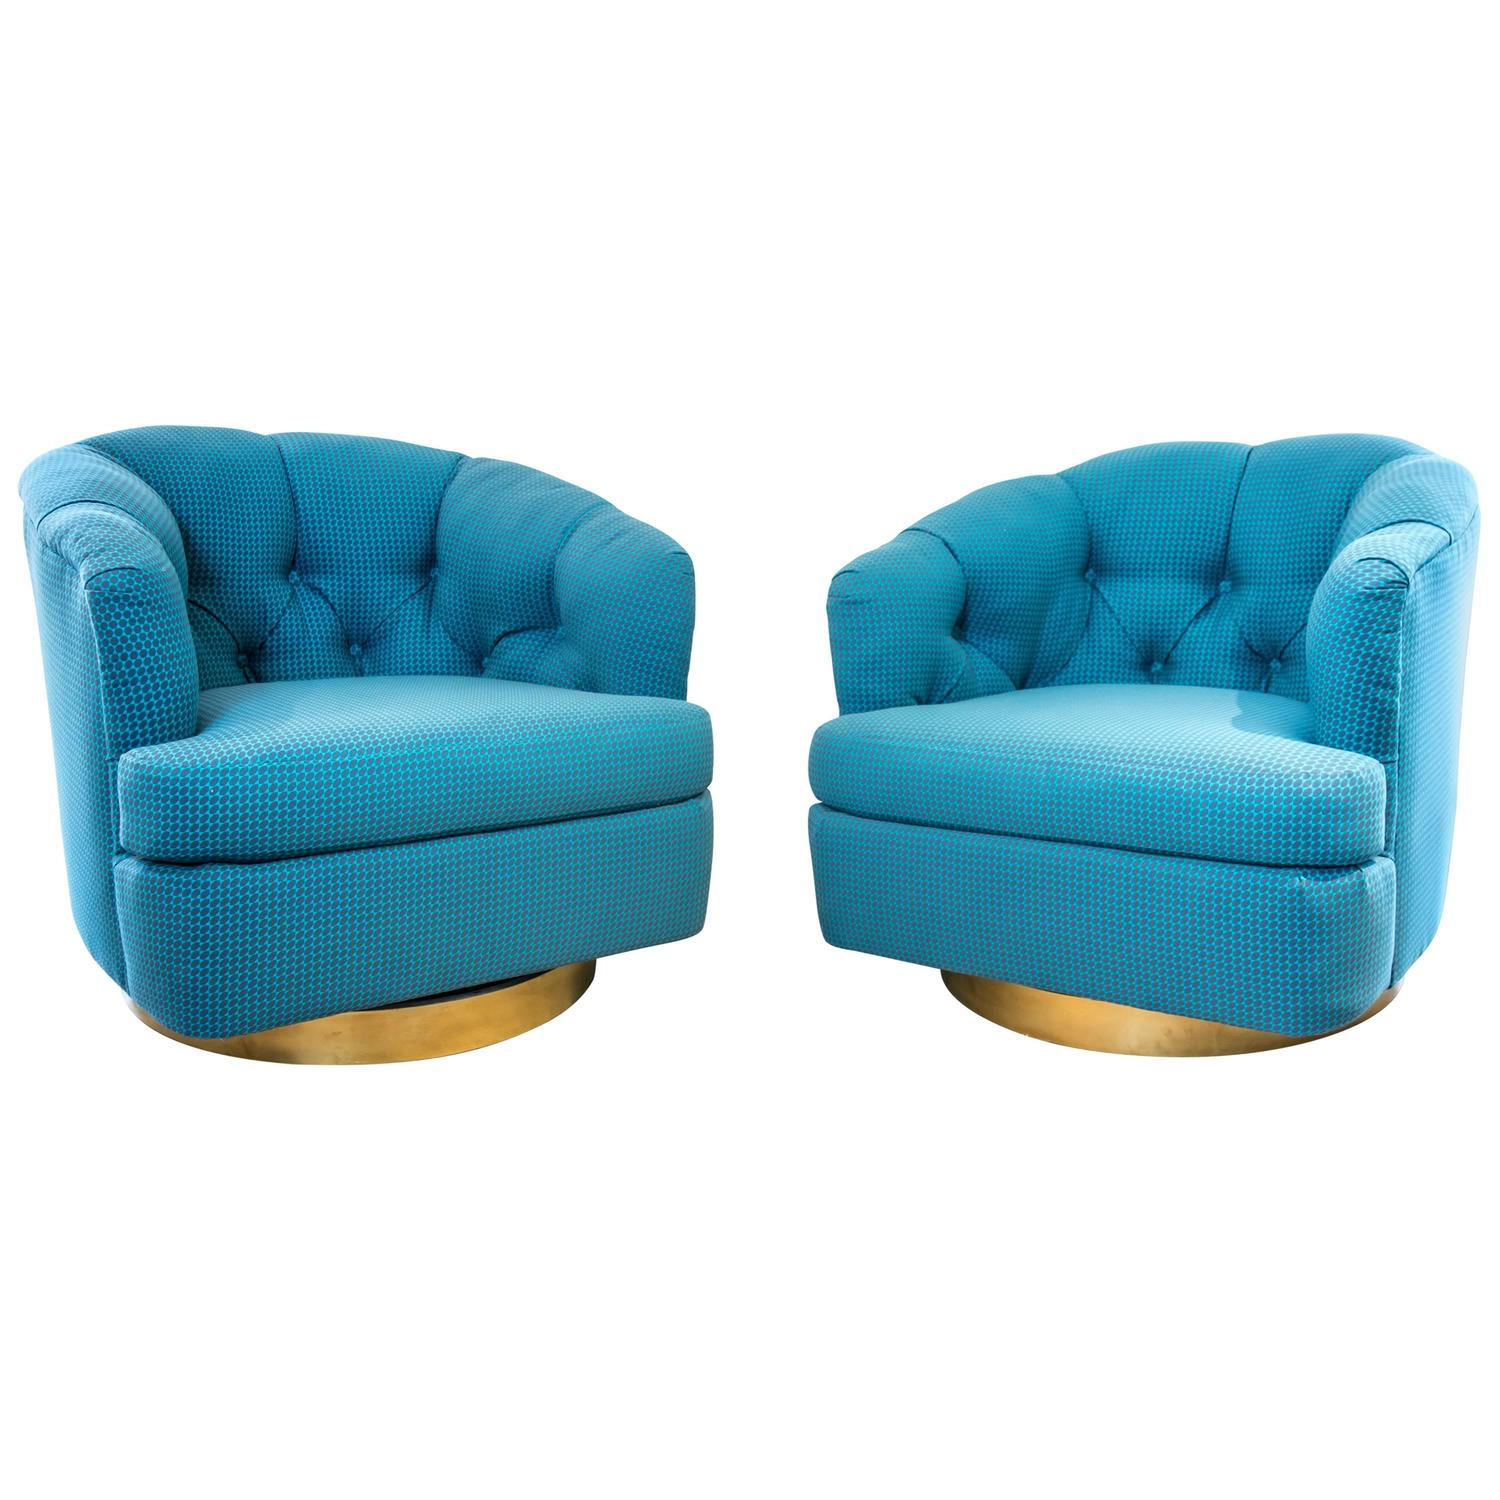 Pair of Vintage Swivel Chairs with Gold Bases in Aqua at 1stdibs